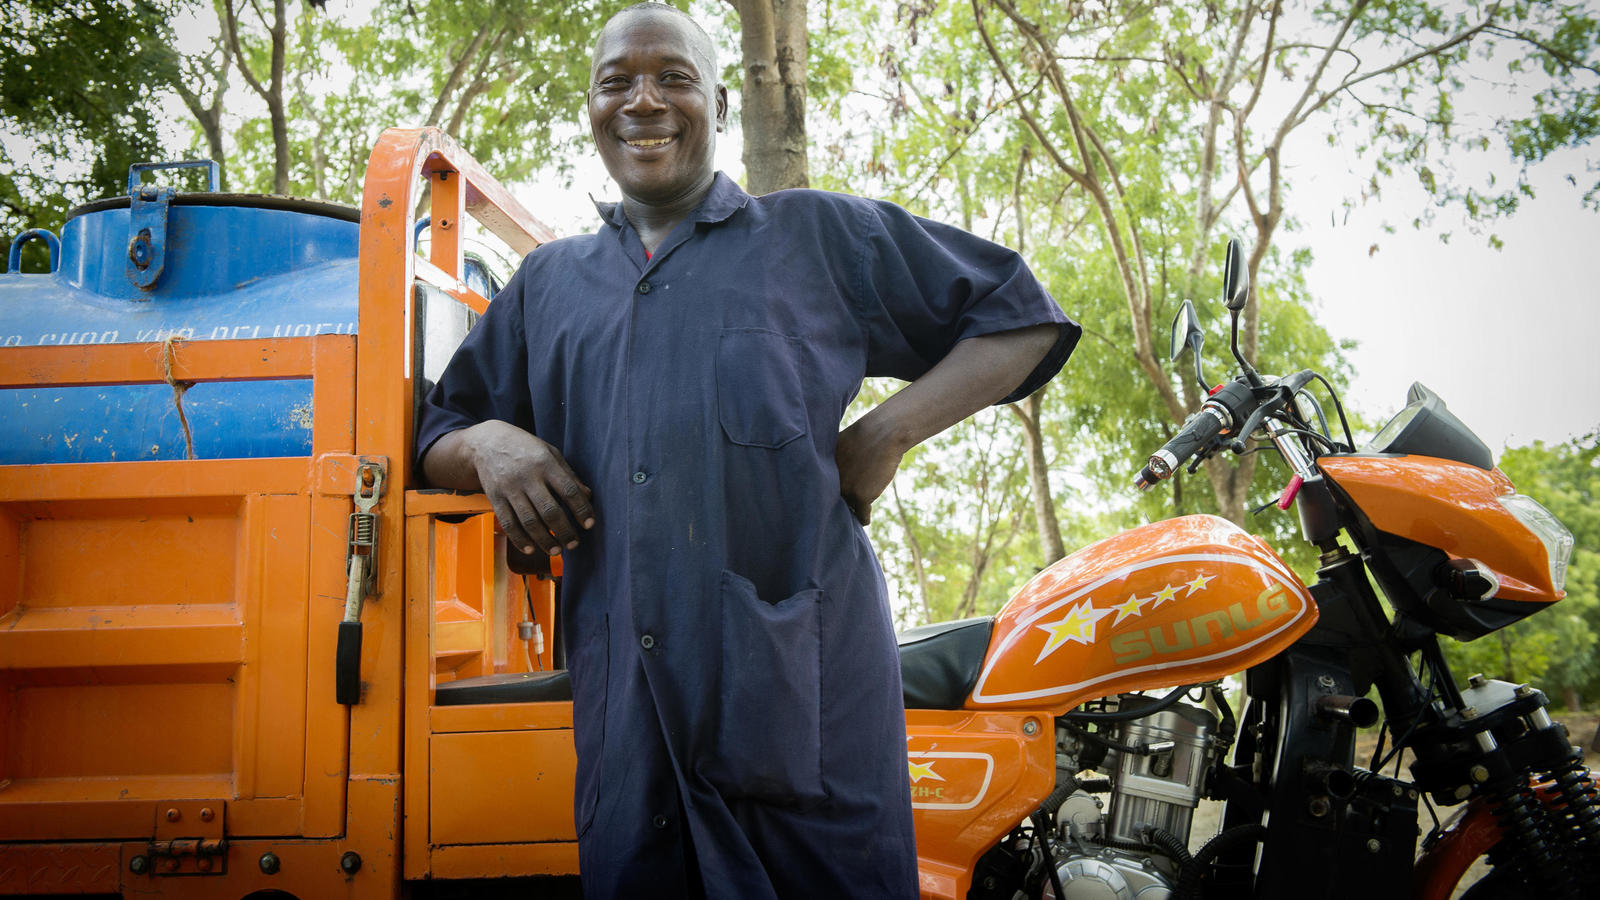 Julius stands next to one of the vehicles that transports gulper pump equipment in Dar es Salaam City, Tanzania.